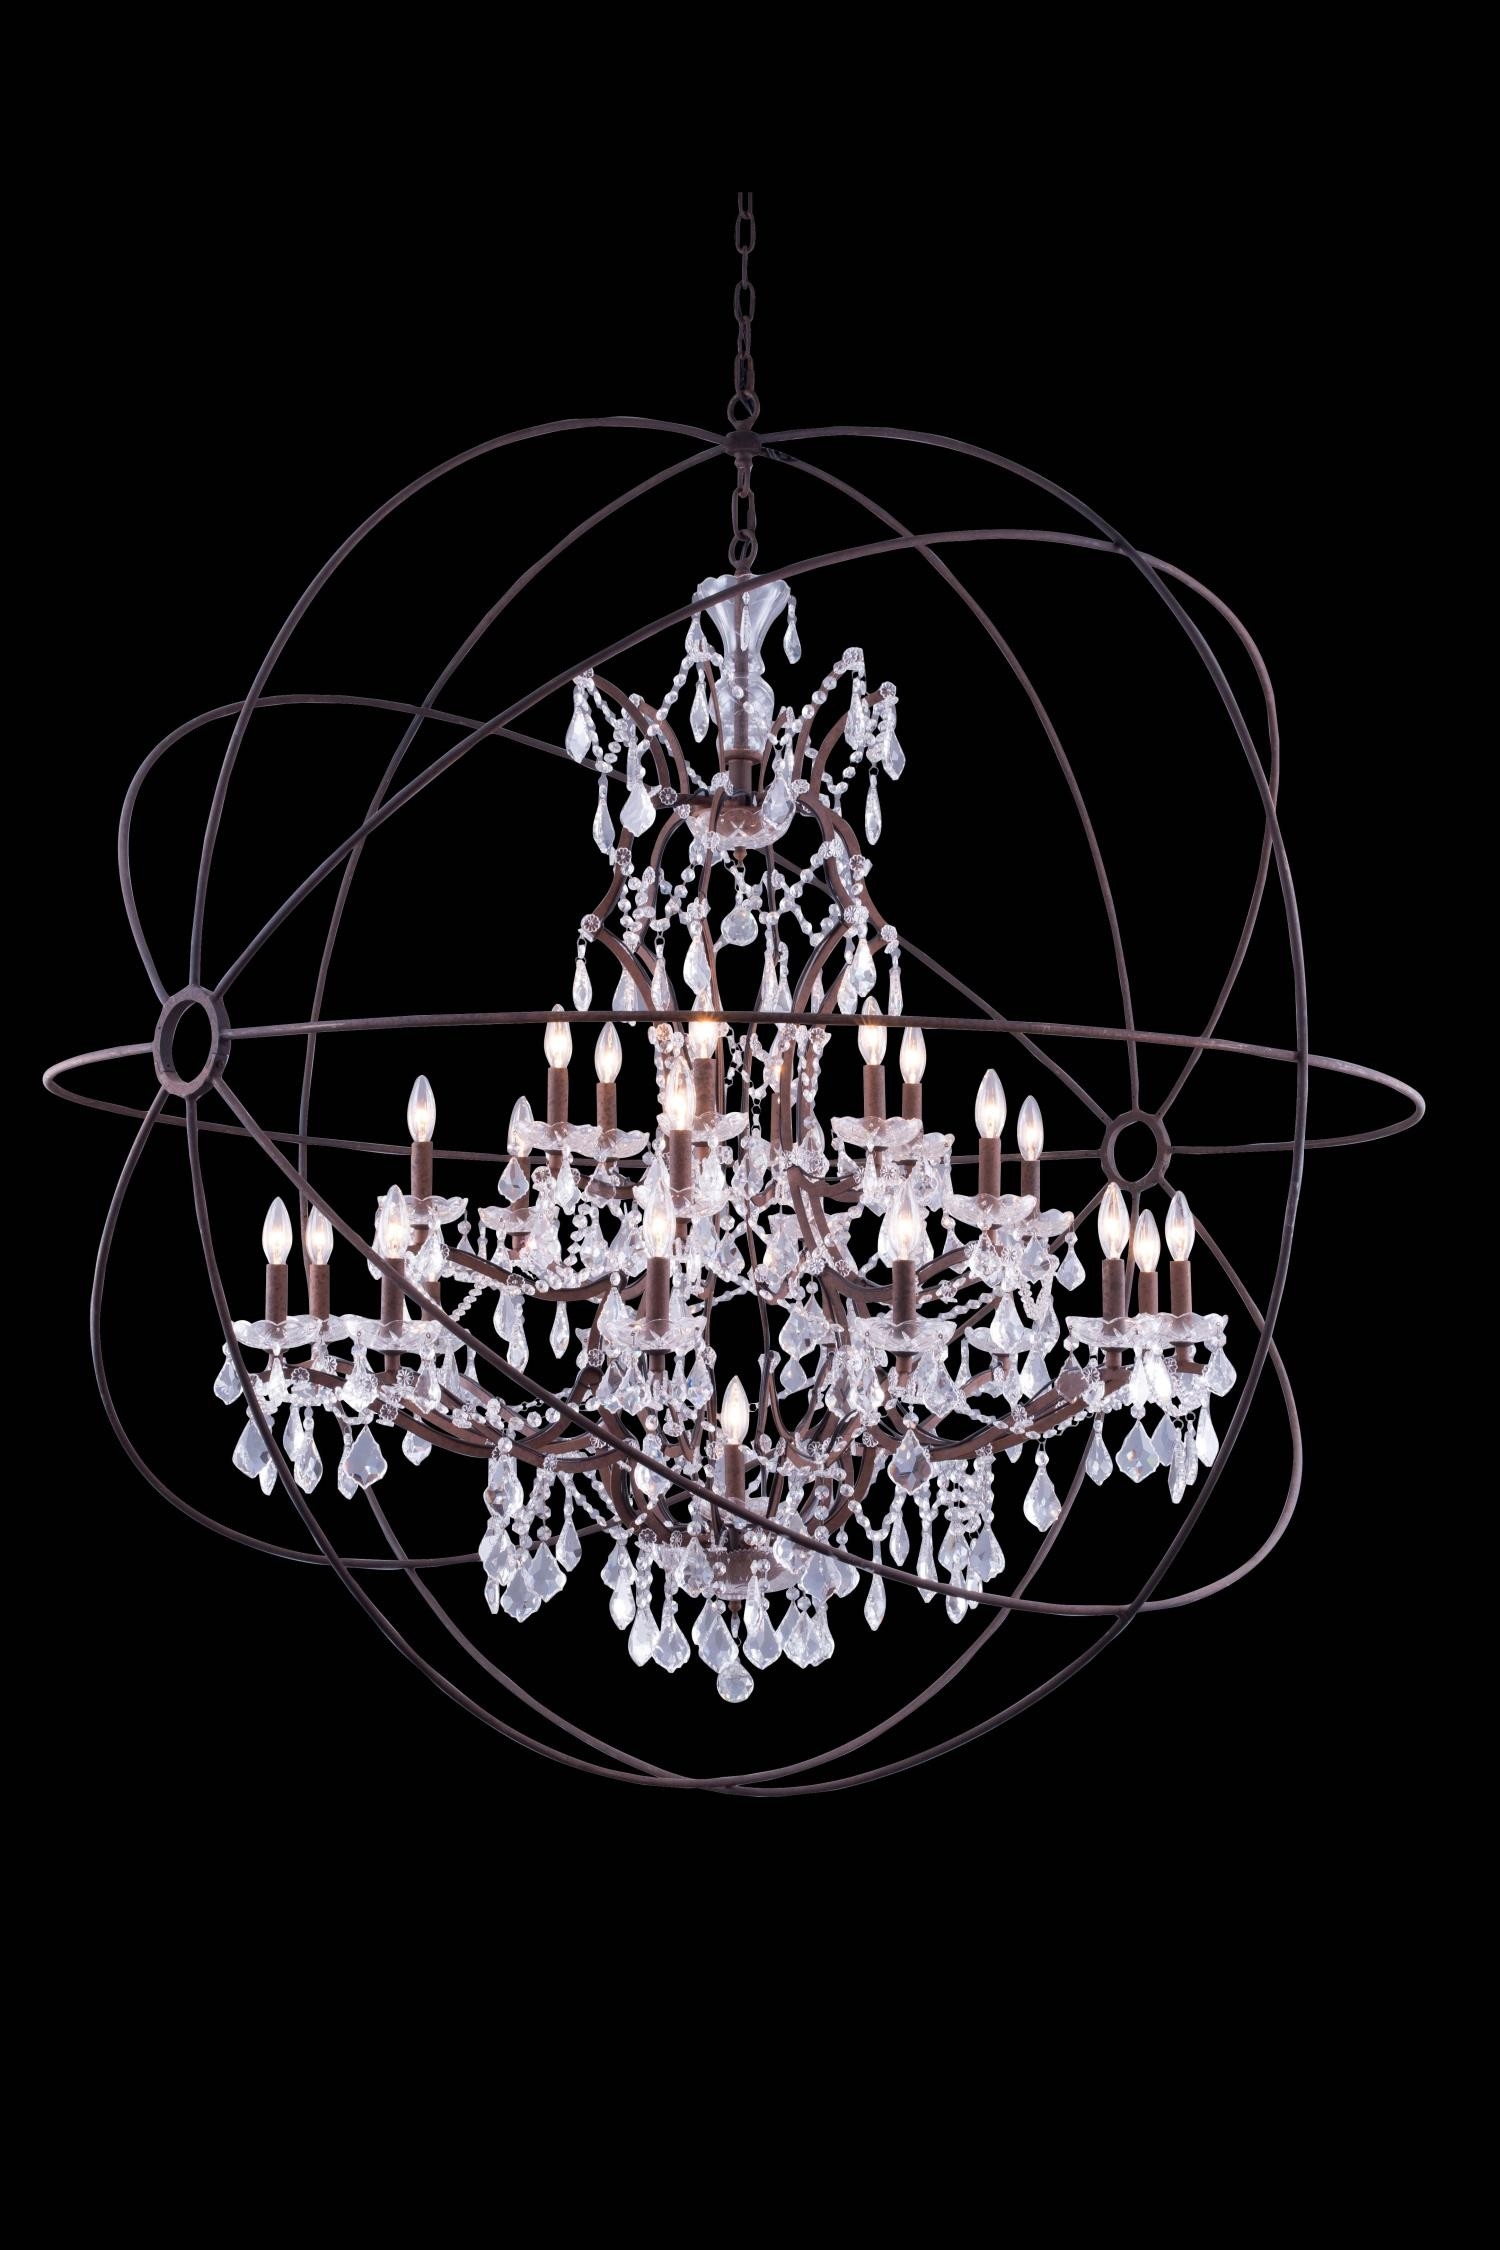 furniture rococo chandelier l fifteen light large sophia lights id french and dore chandeliers century crystal for lighting late bronze f pendant dor sale